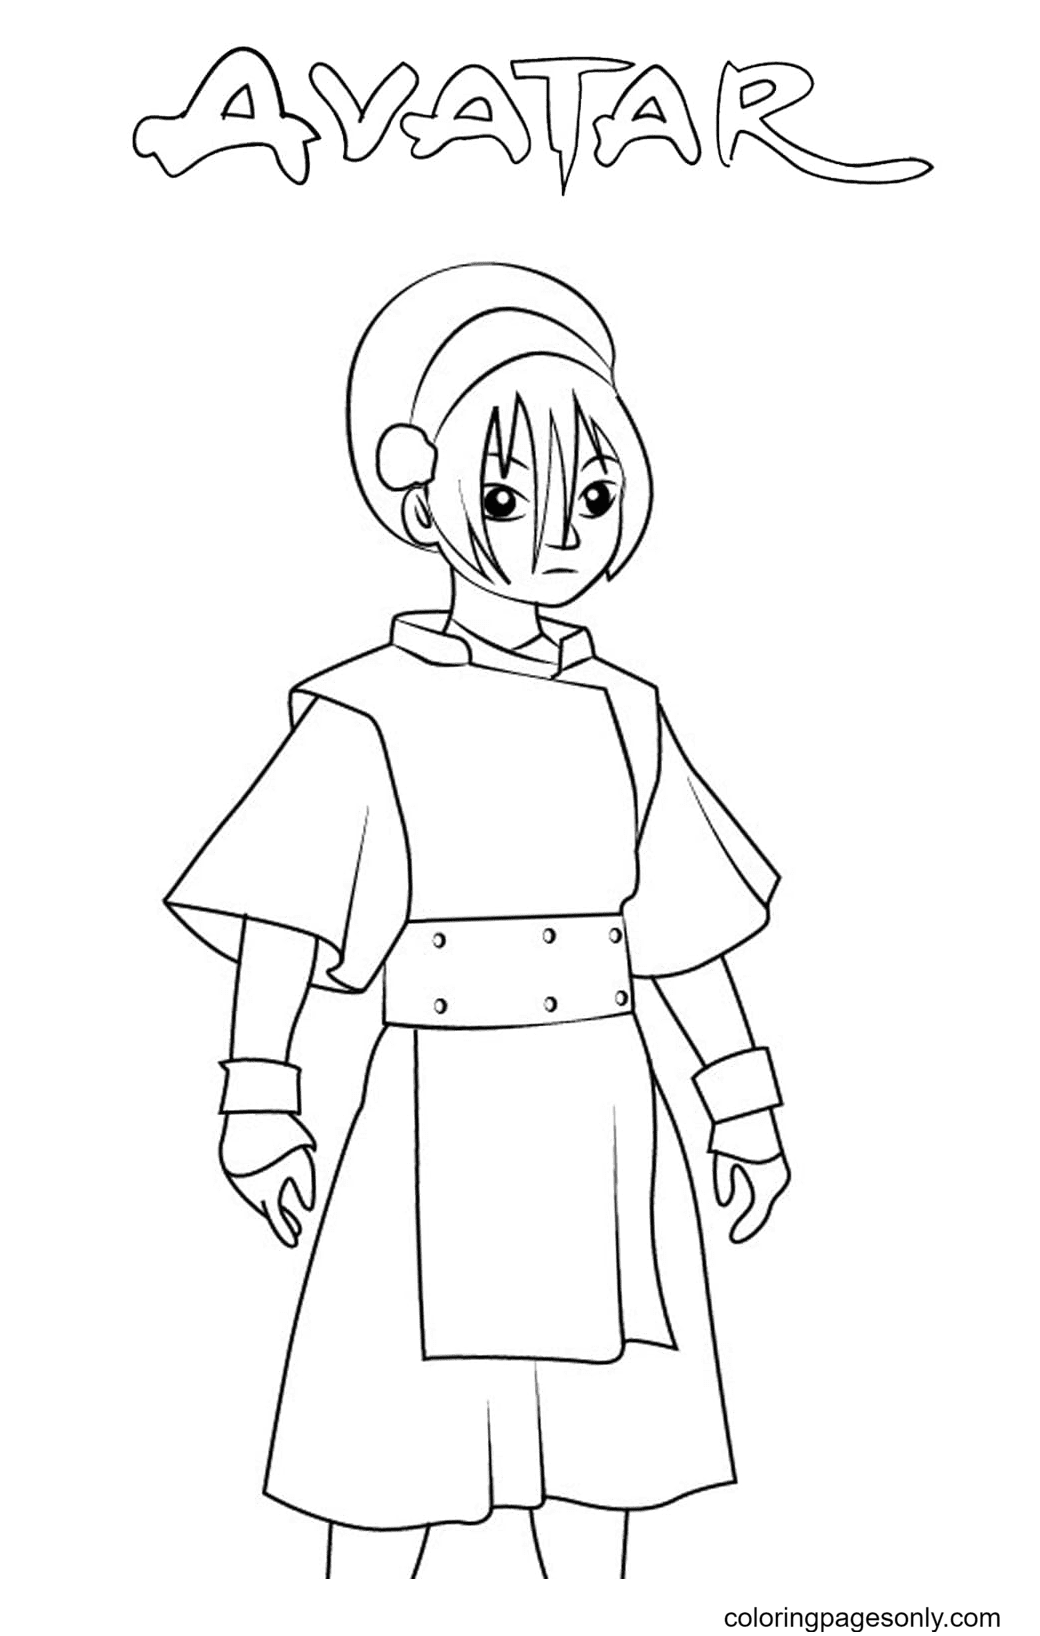 Toph Beifong Coloring Page